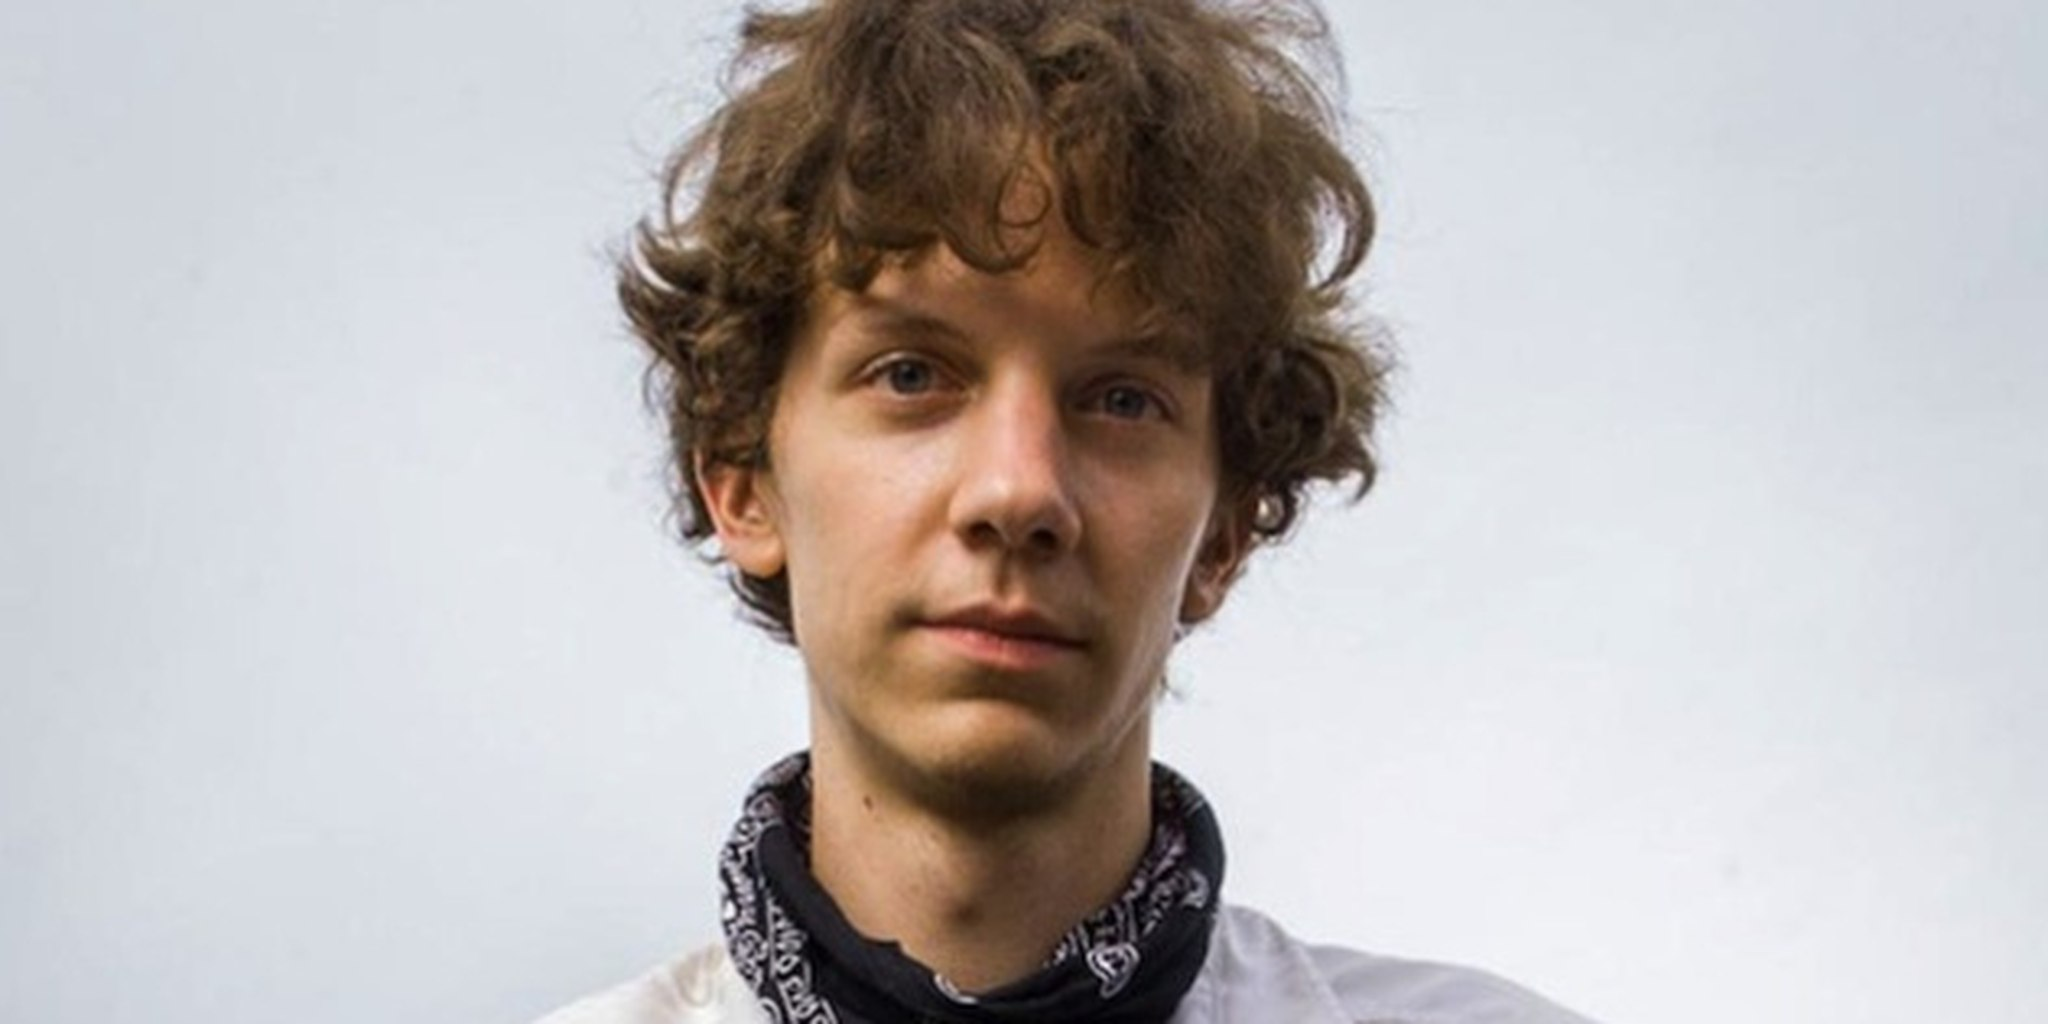 Was Jeremy Hammond's Stratfor Hack an Act of Civil Disobedience? | Motherboard